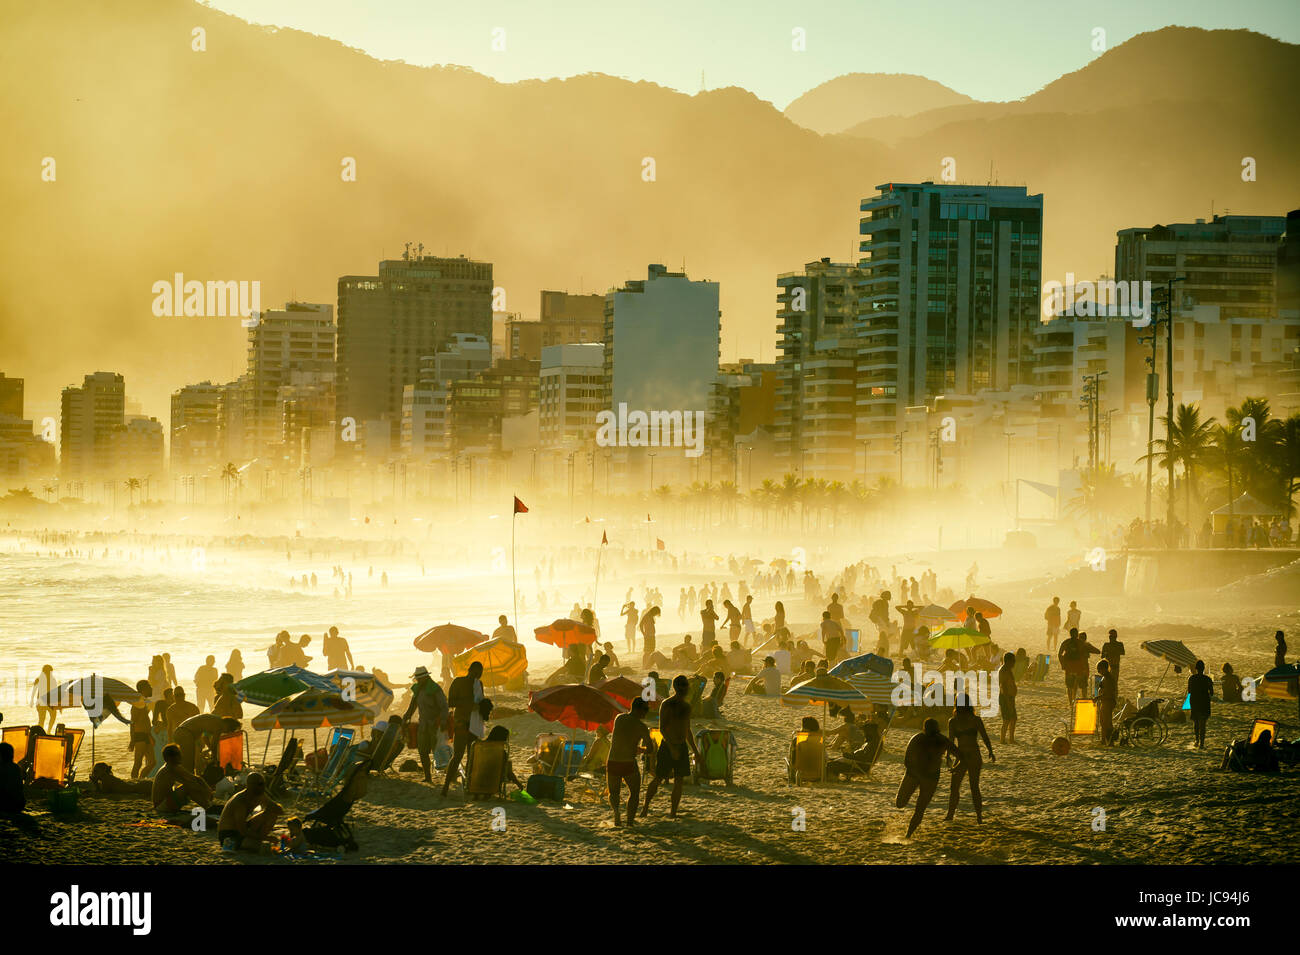 RIO DE JANEIRO - MARCH 20, 2017: Silhouettes of people enjoing the golden misty sunset shores of Ipanema Beach in Stock Photo